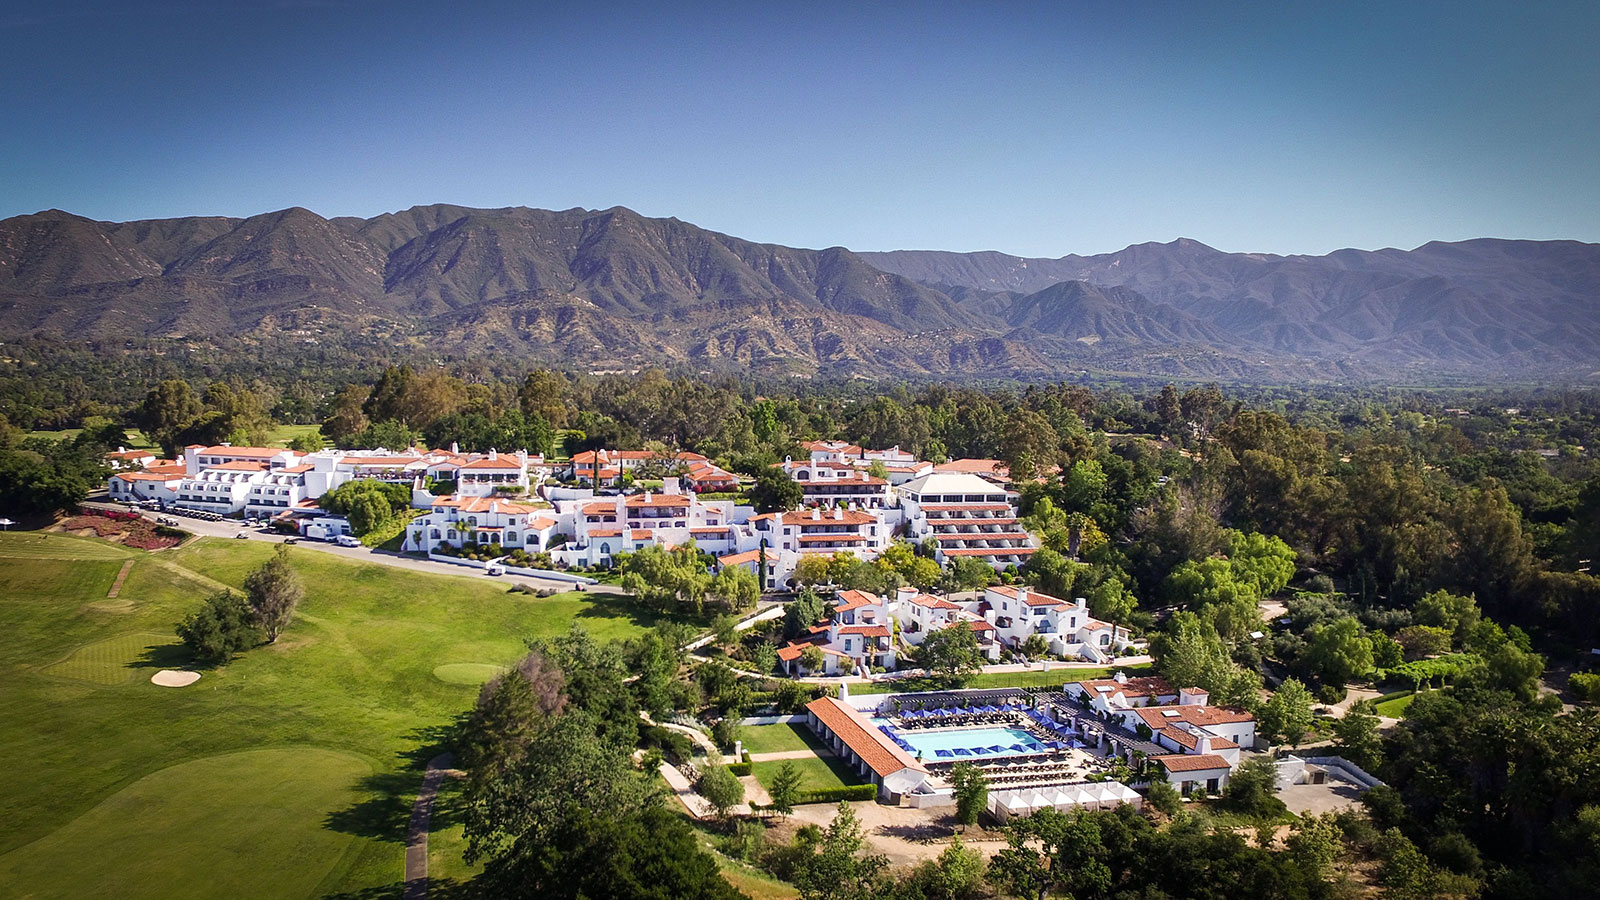 Discover the grand Spanish Colonial-style façade of the Ojai Valley Inn.